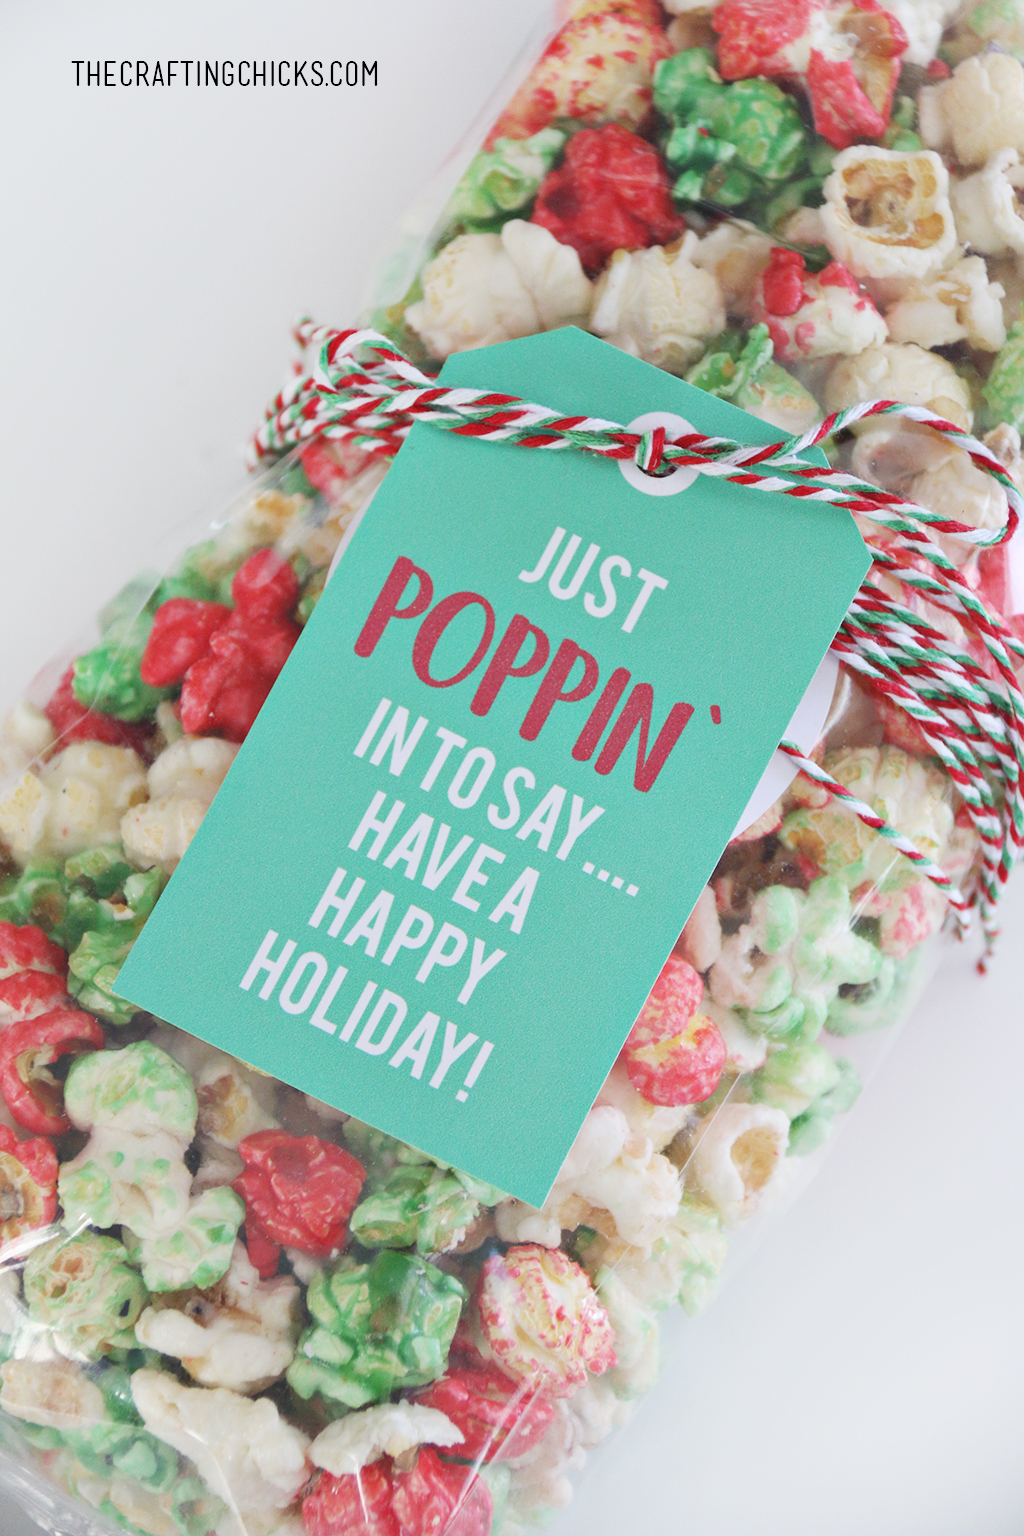 Just Poppin' In Christmas Popcorn Tag added to red, green, and white popcorn for a holiday gift idea.